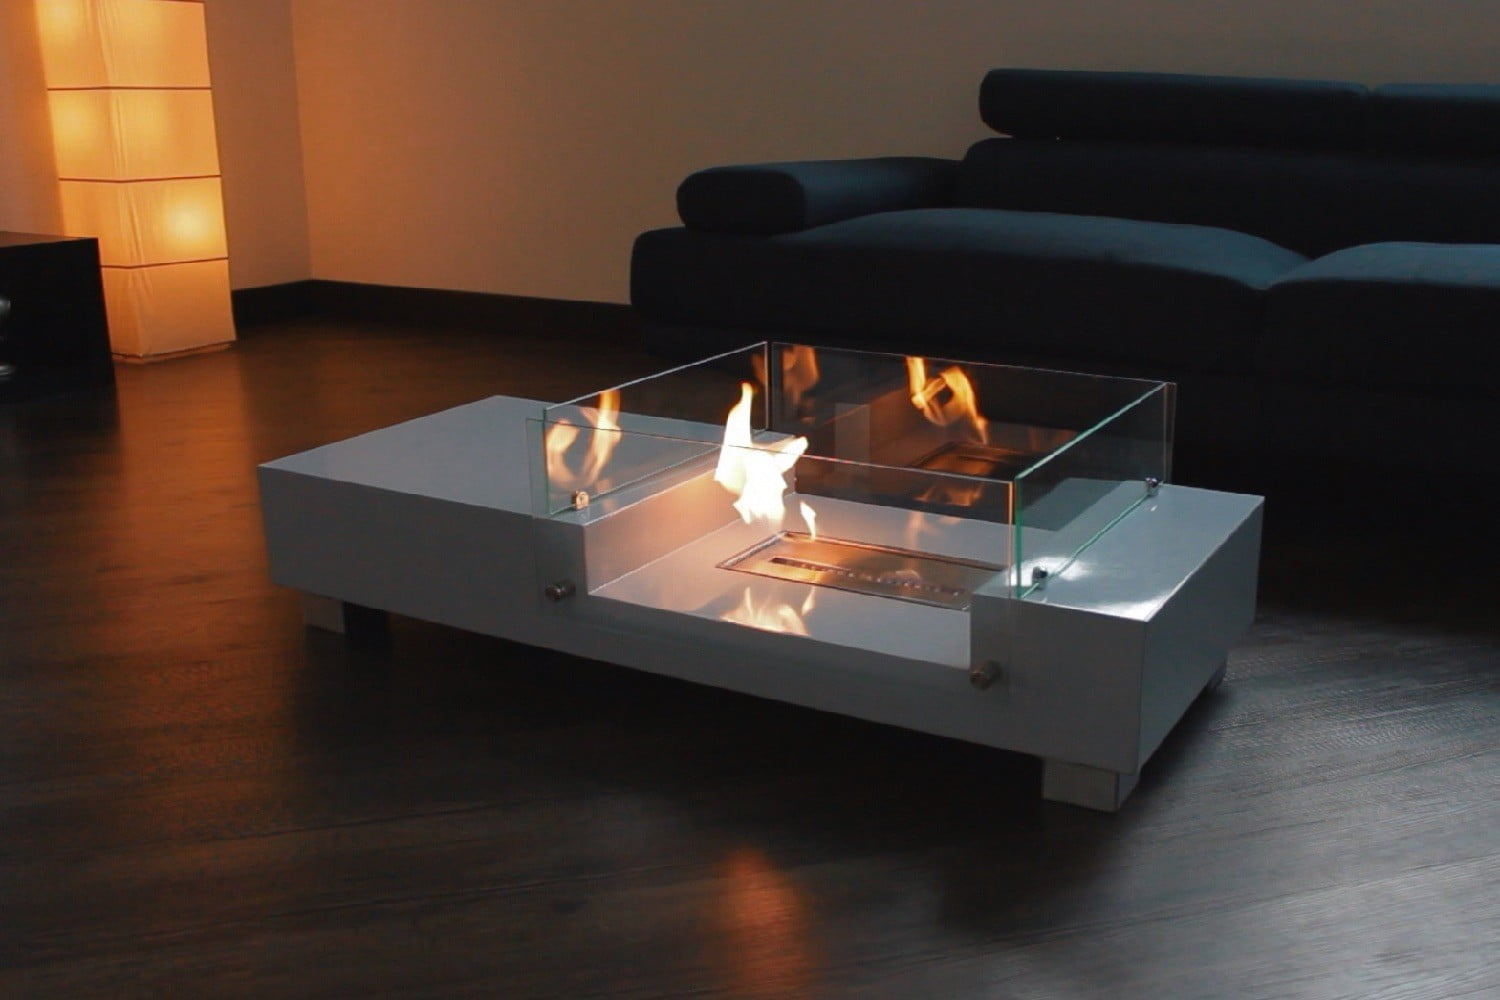 Kickstarters Fireplace Coffee Table Is So Hot Right Now Digital with regard to measurements 1500 X 1000